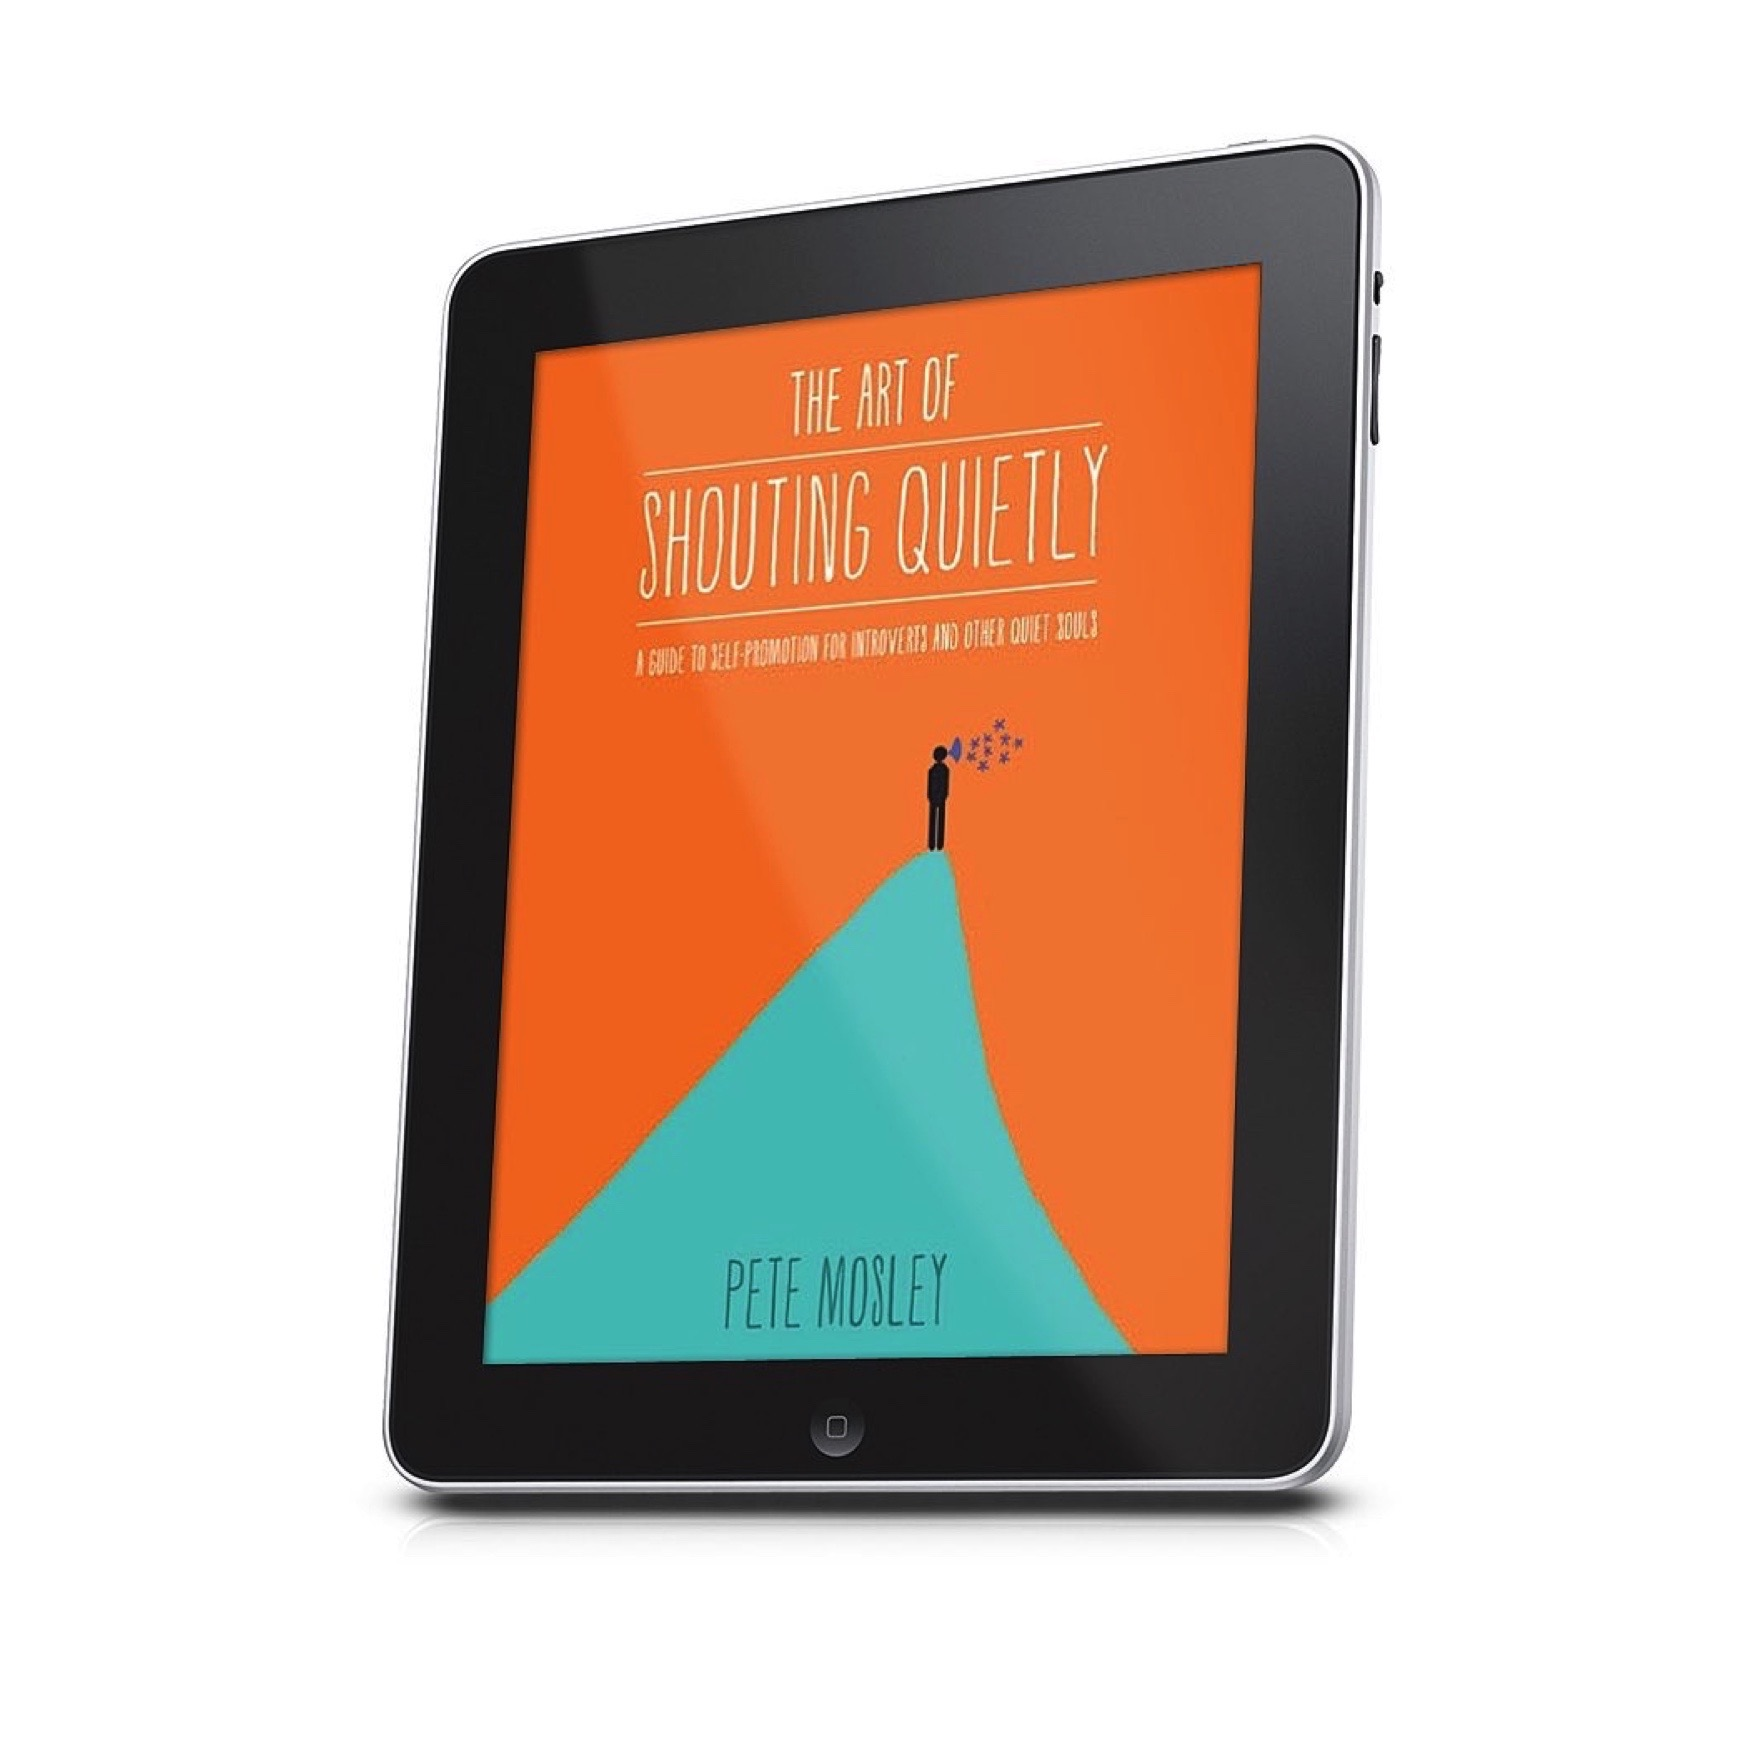 Ebook: The Art of Shouting Quietly